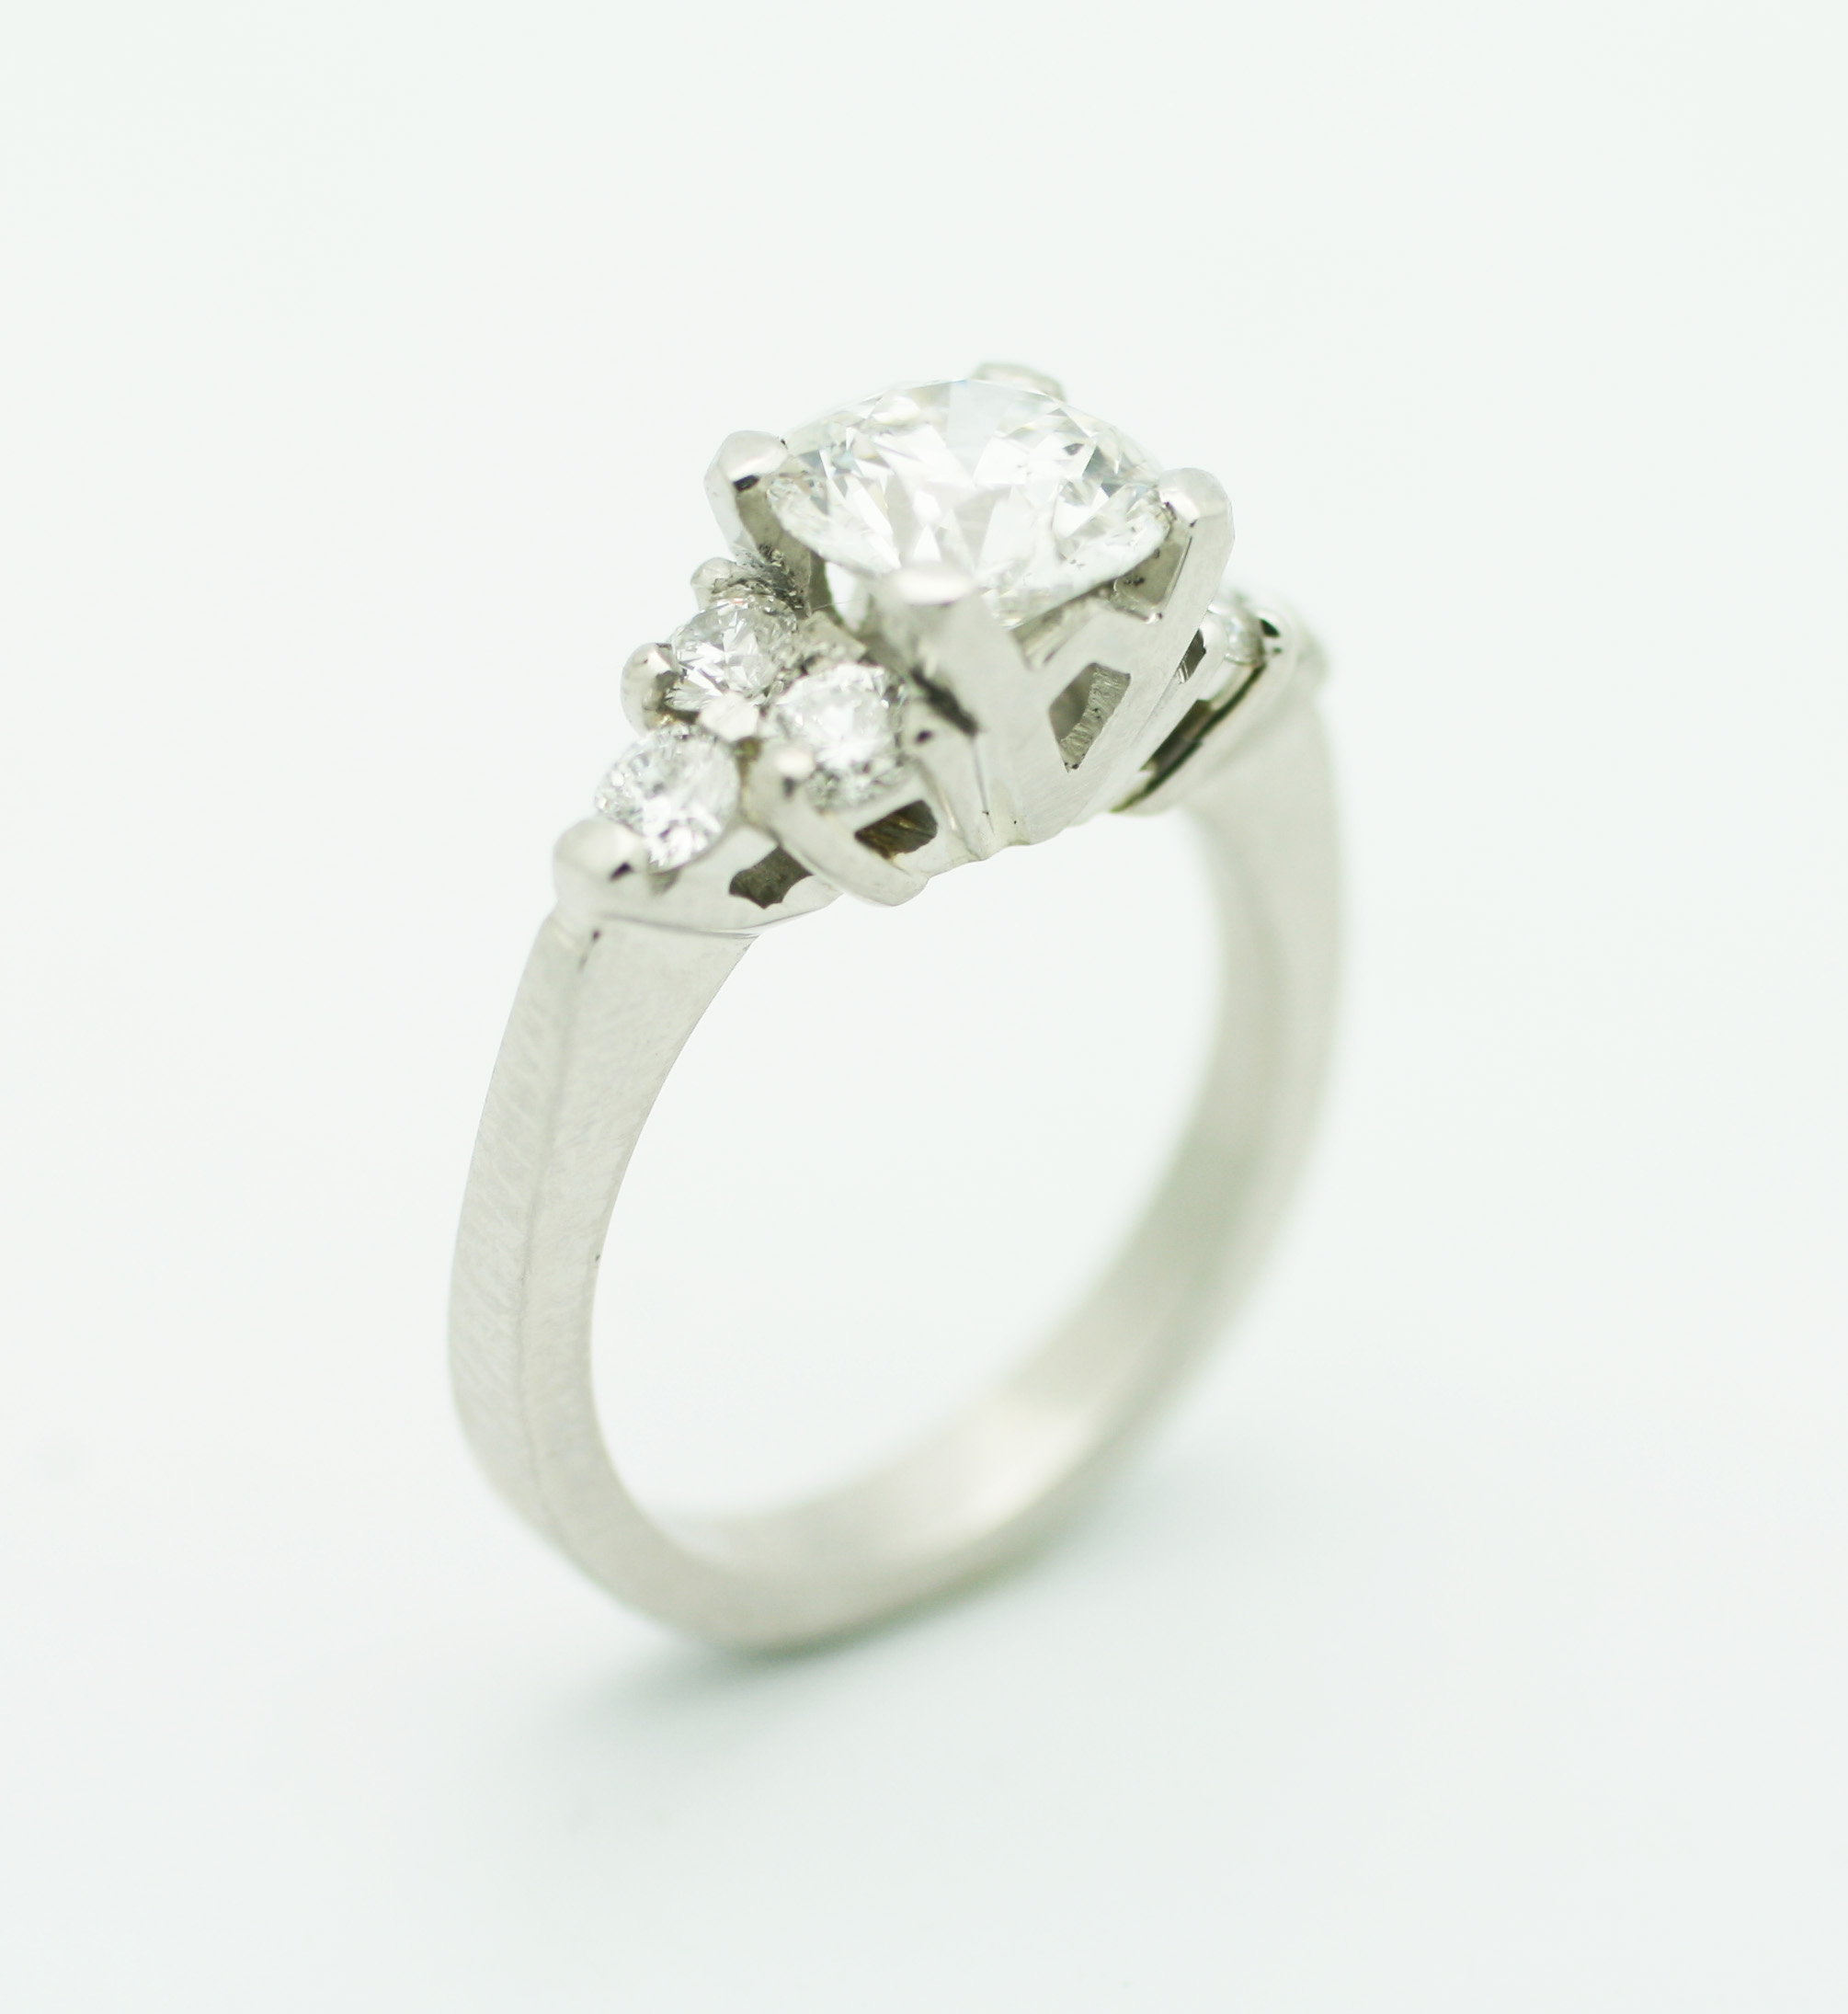 1.8ct round brilliant cut diamond, 0.43tcw diamond side stones, platinum setting  Starting at $19,000 for this stone sizeSI-2 clarity and G colour  Can be customizable with any stone, size, metal etc.